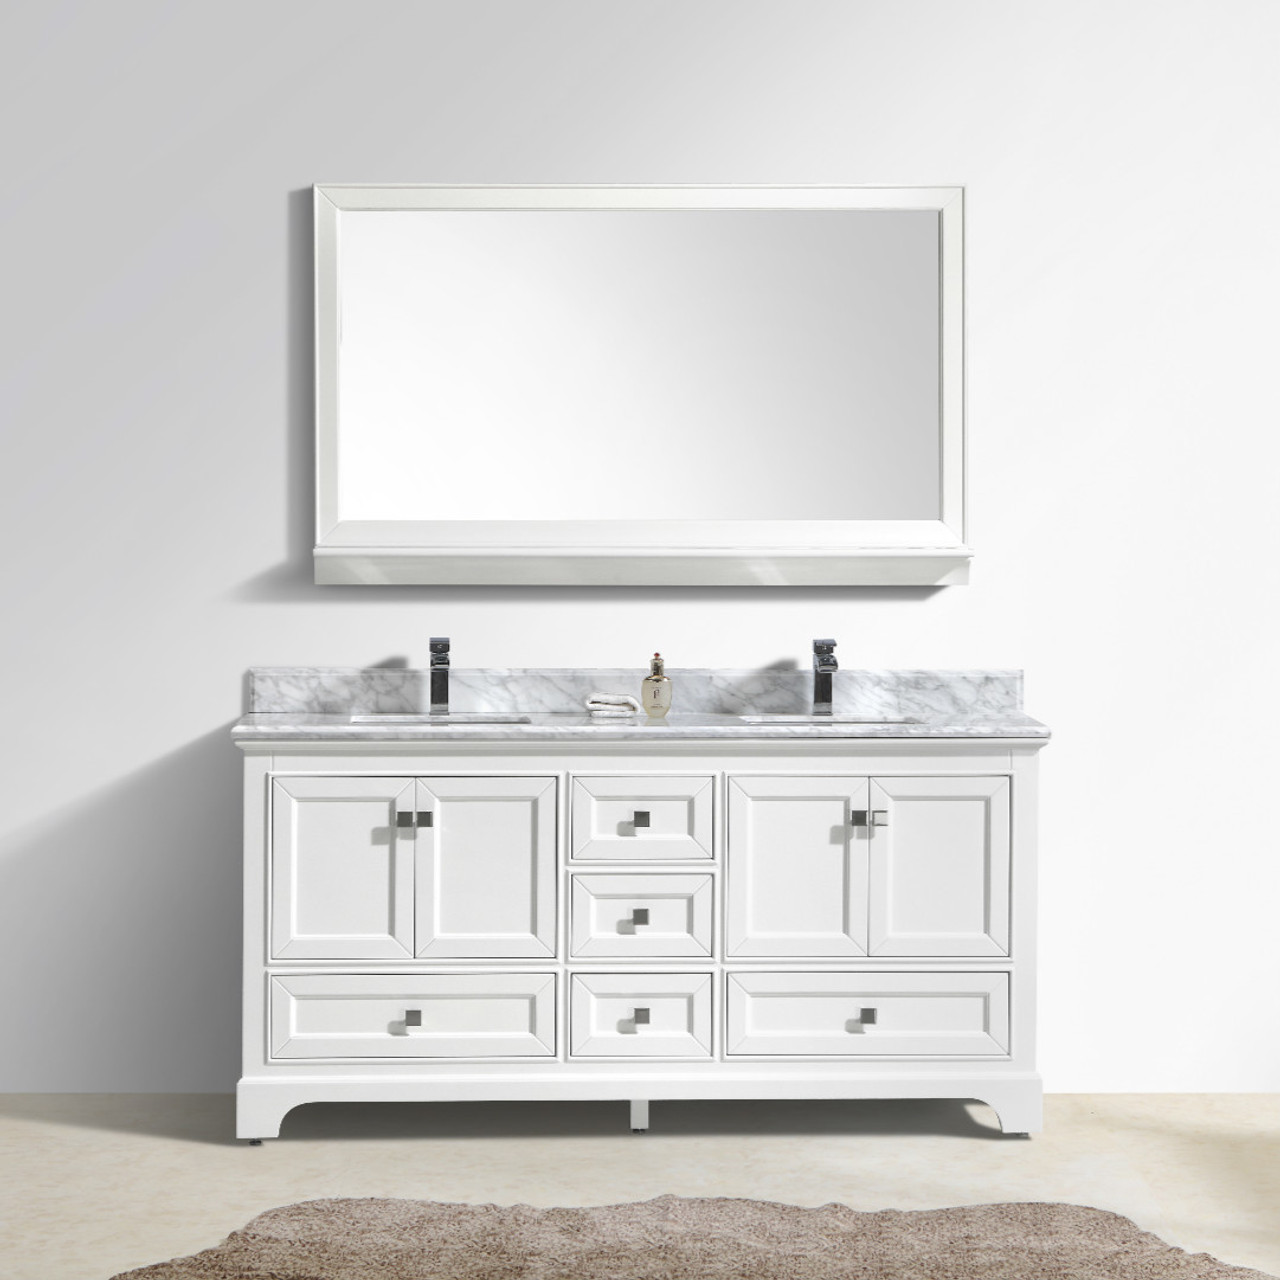 Bathroom Vanity 72 Double Sink Maple 72